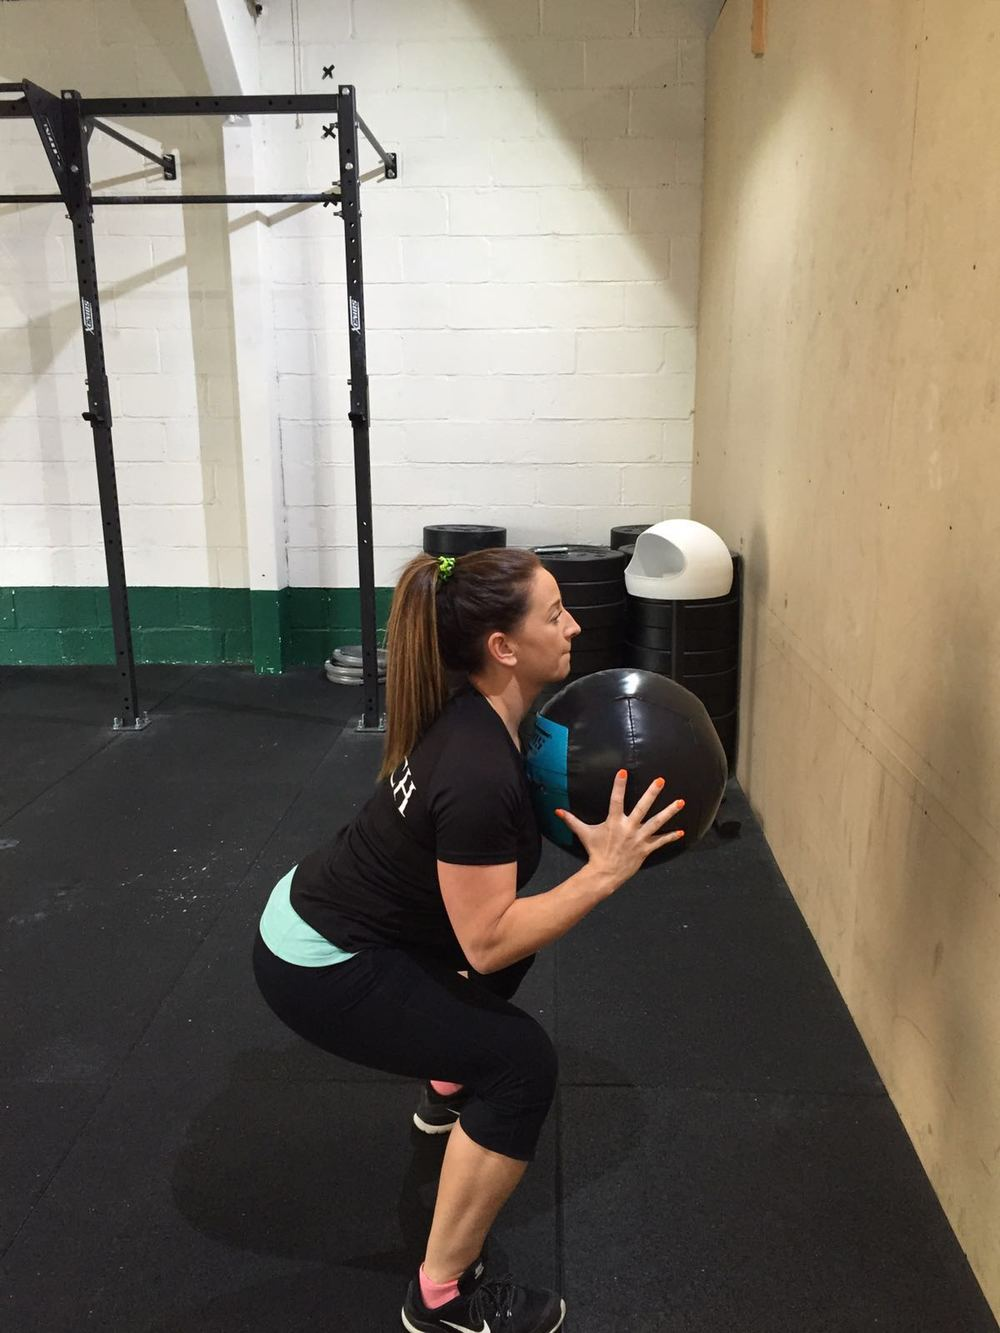 Wall ball exercises, crossfit Chiltern, berkhamsted, amersham